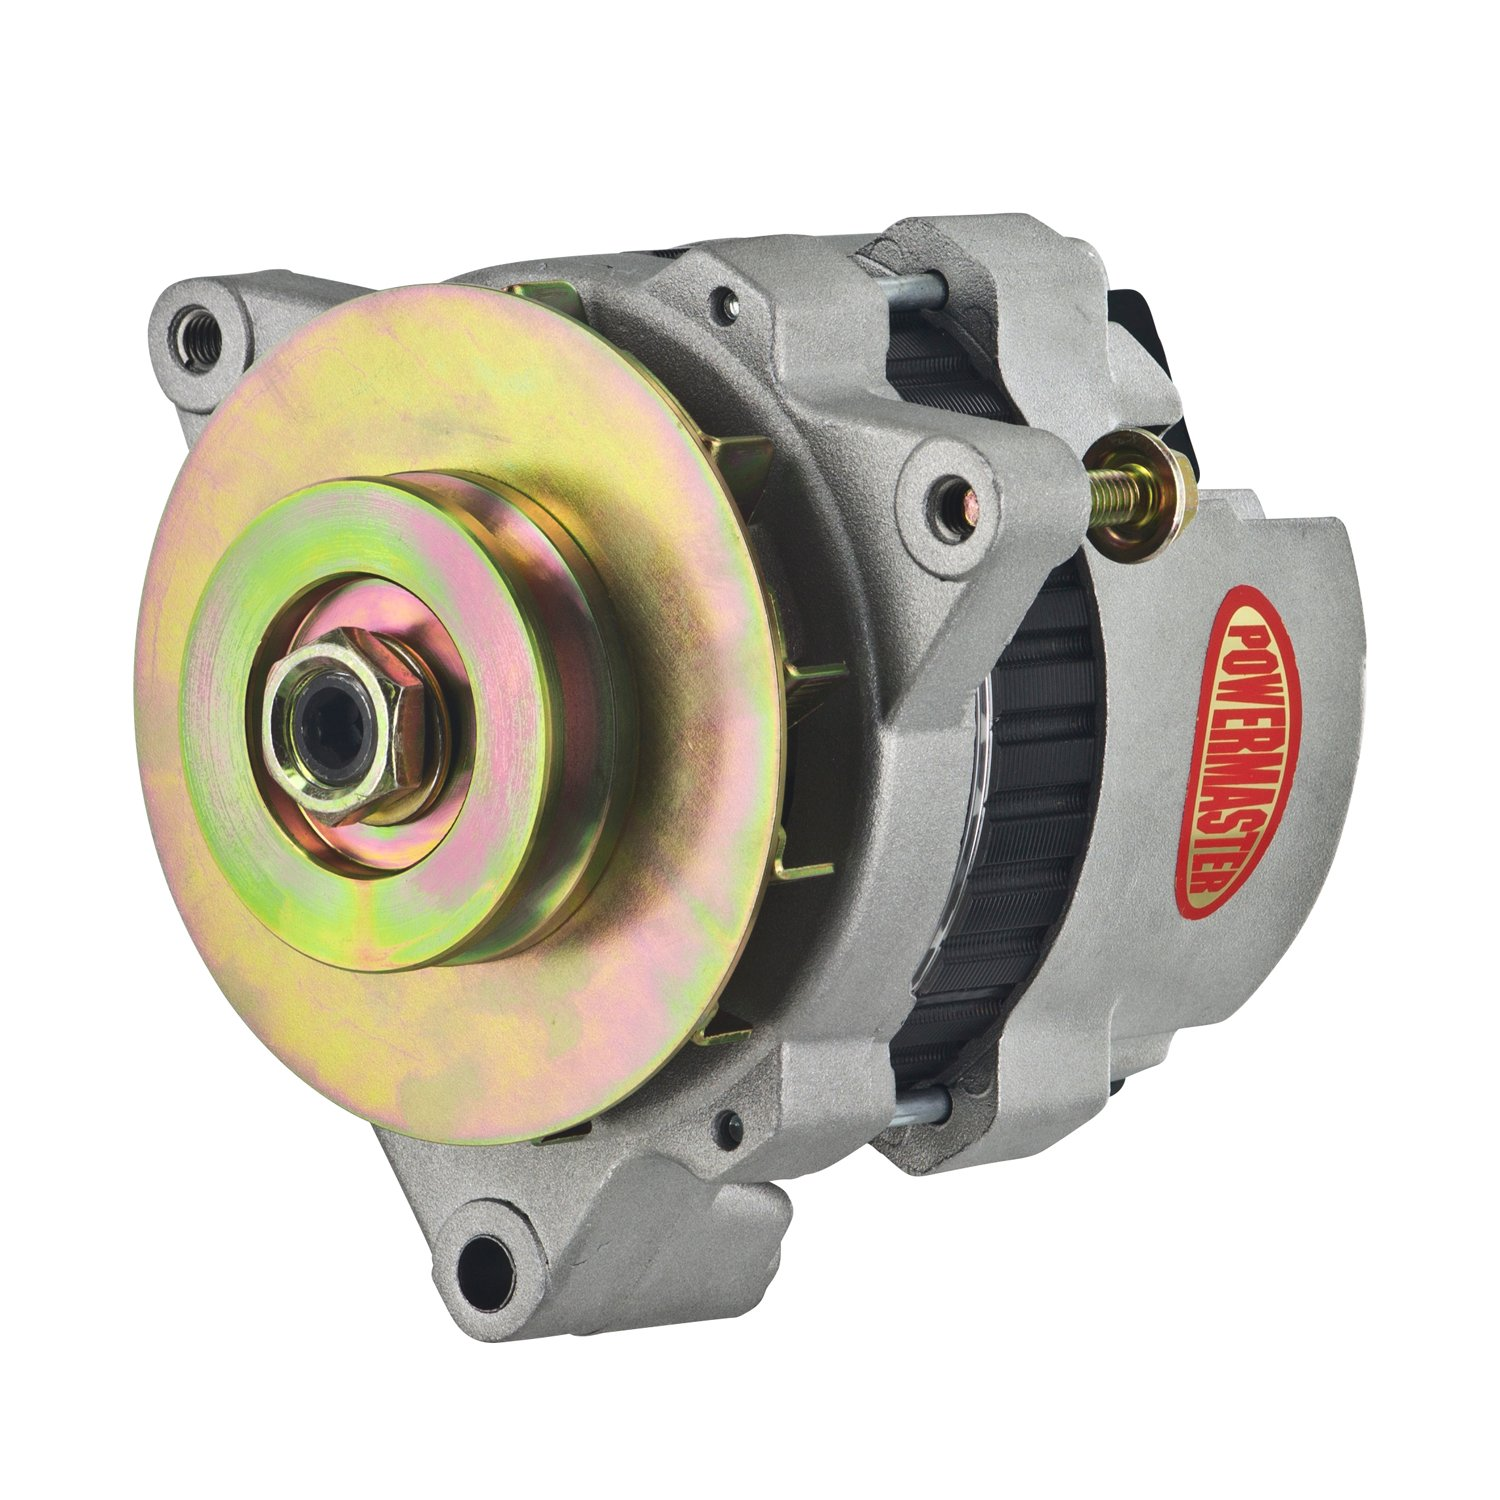 Powermaster 7476-104 - GM 5x5 Compact Race Alternators